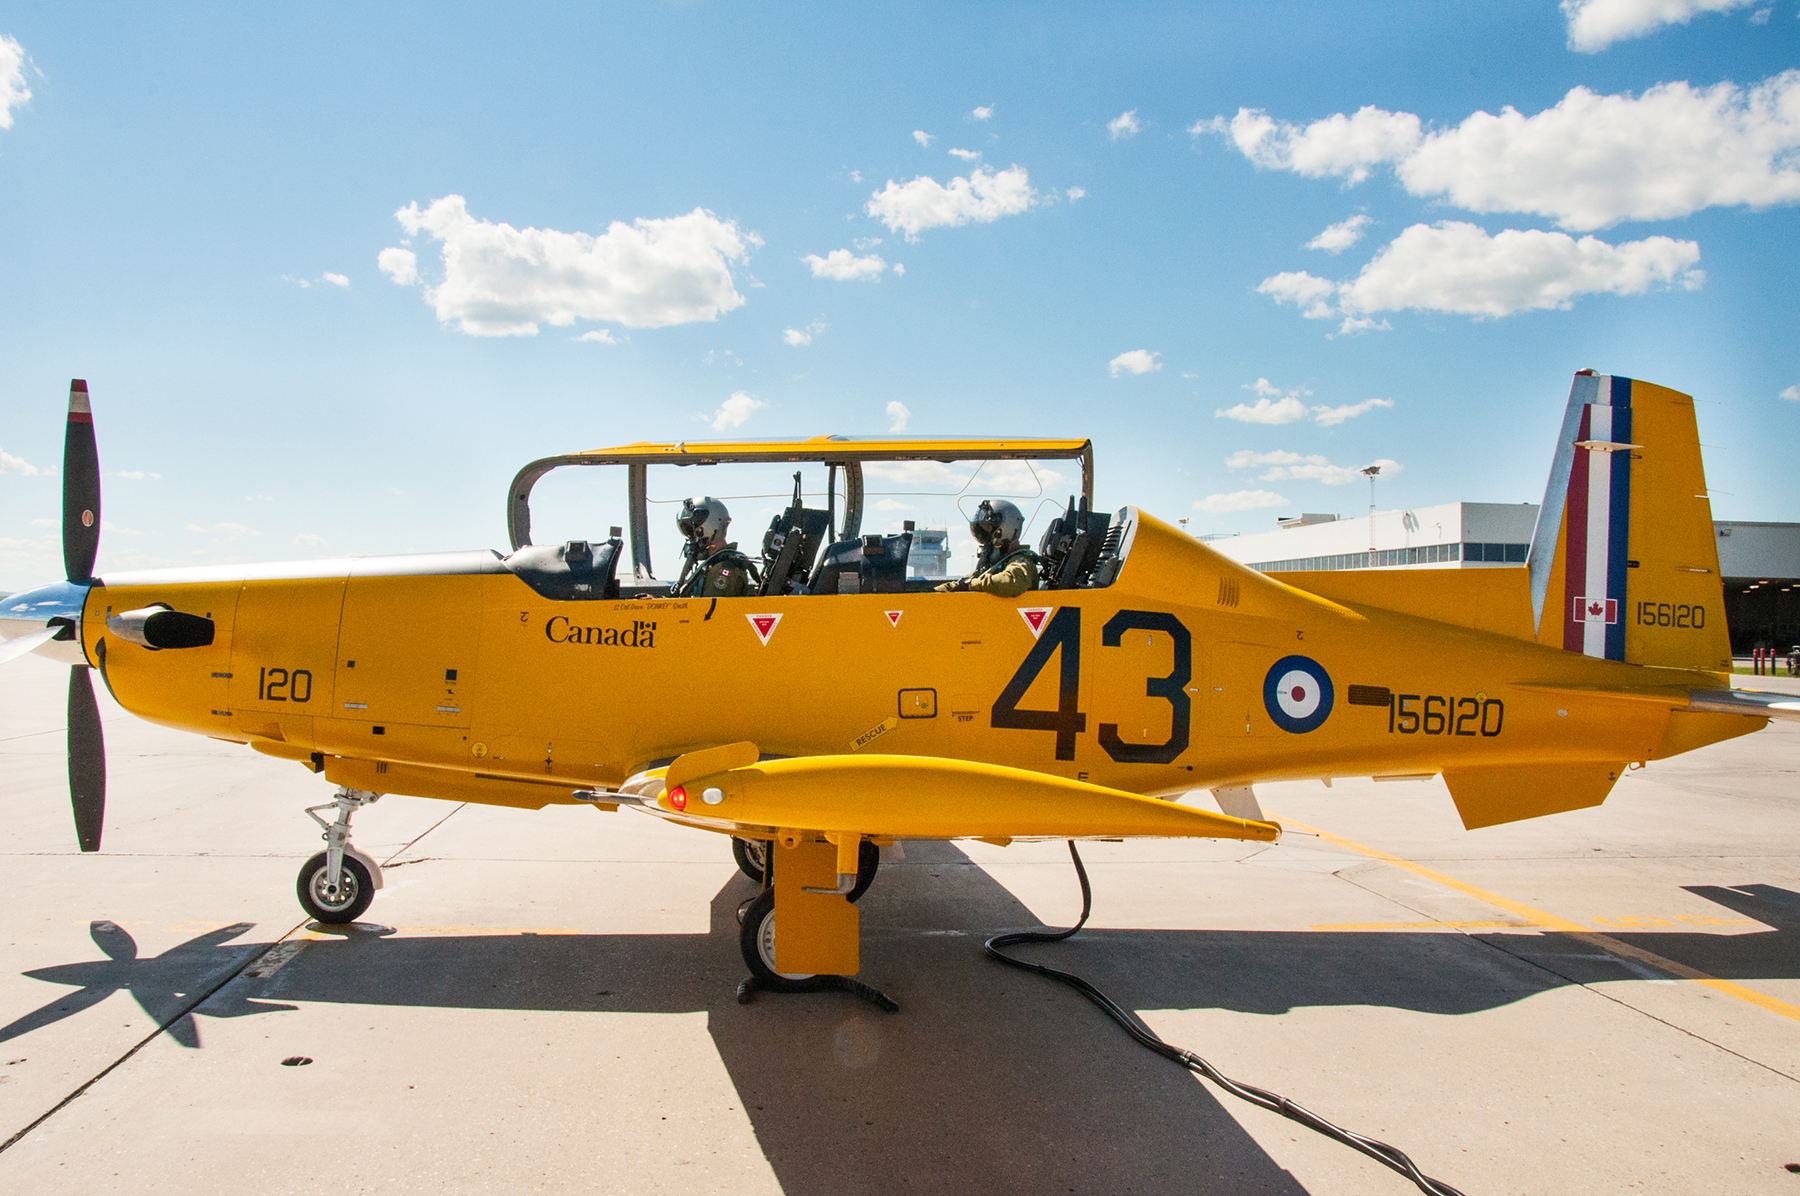 Through the diligent efforts of many, and in cooperation with NATO Flying Training in Canada (NFTC) program partner, CAE, the aircraft has been painted in a yellow Second World War British Commonwealth Air Training Plan paint scheme to commemorate the Plan. PHOTO: DND